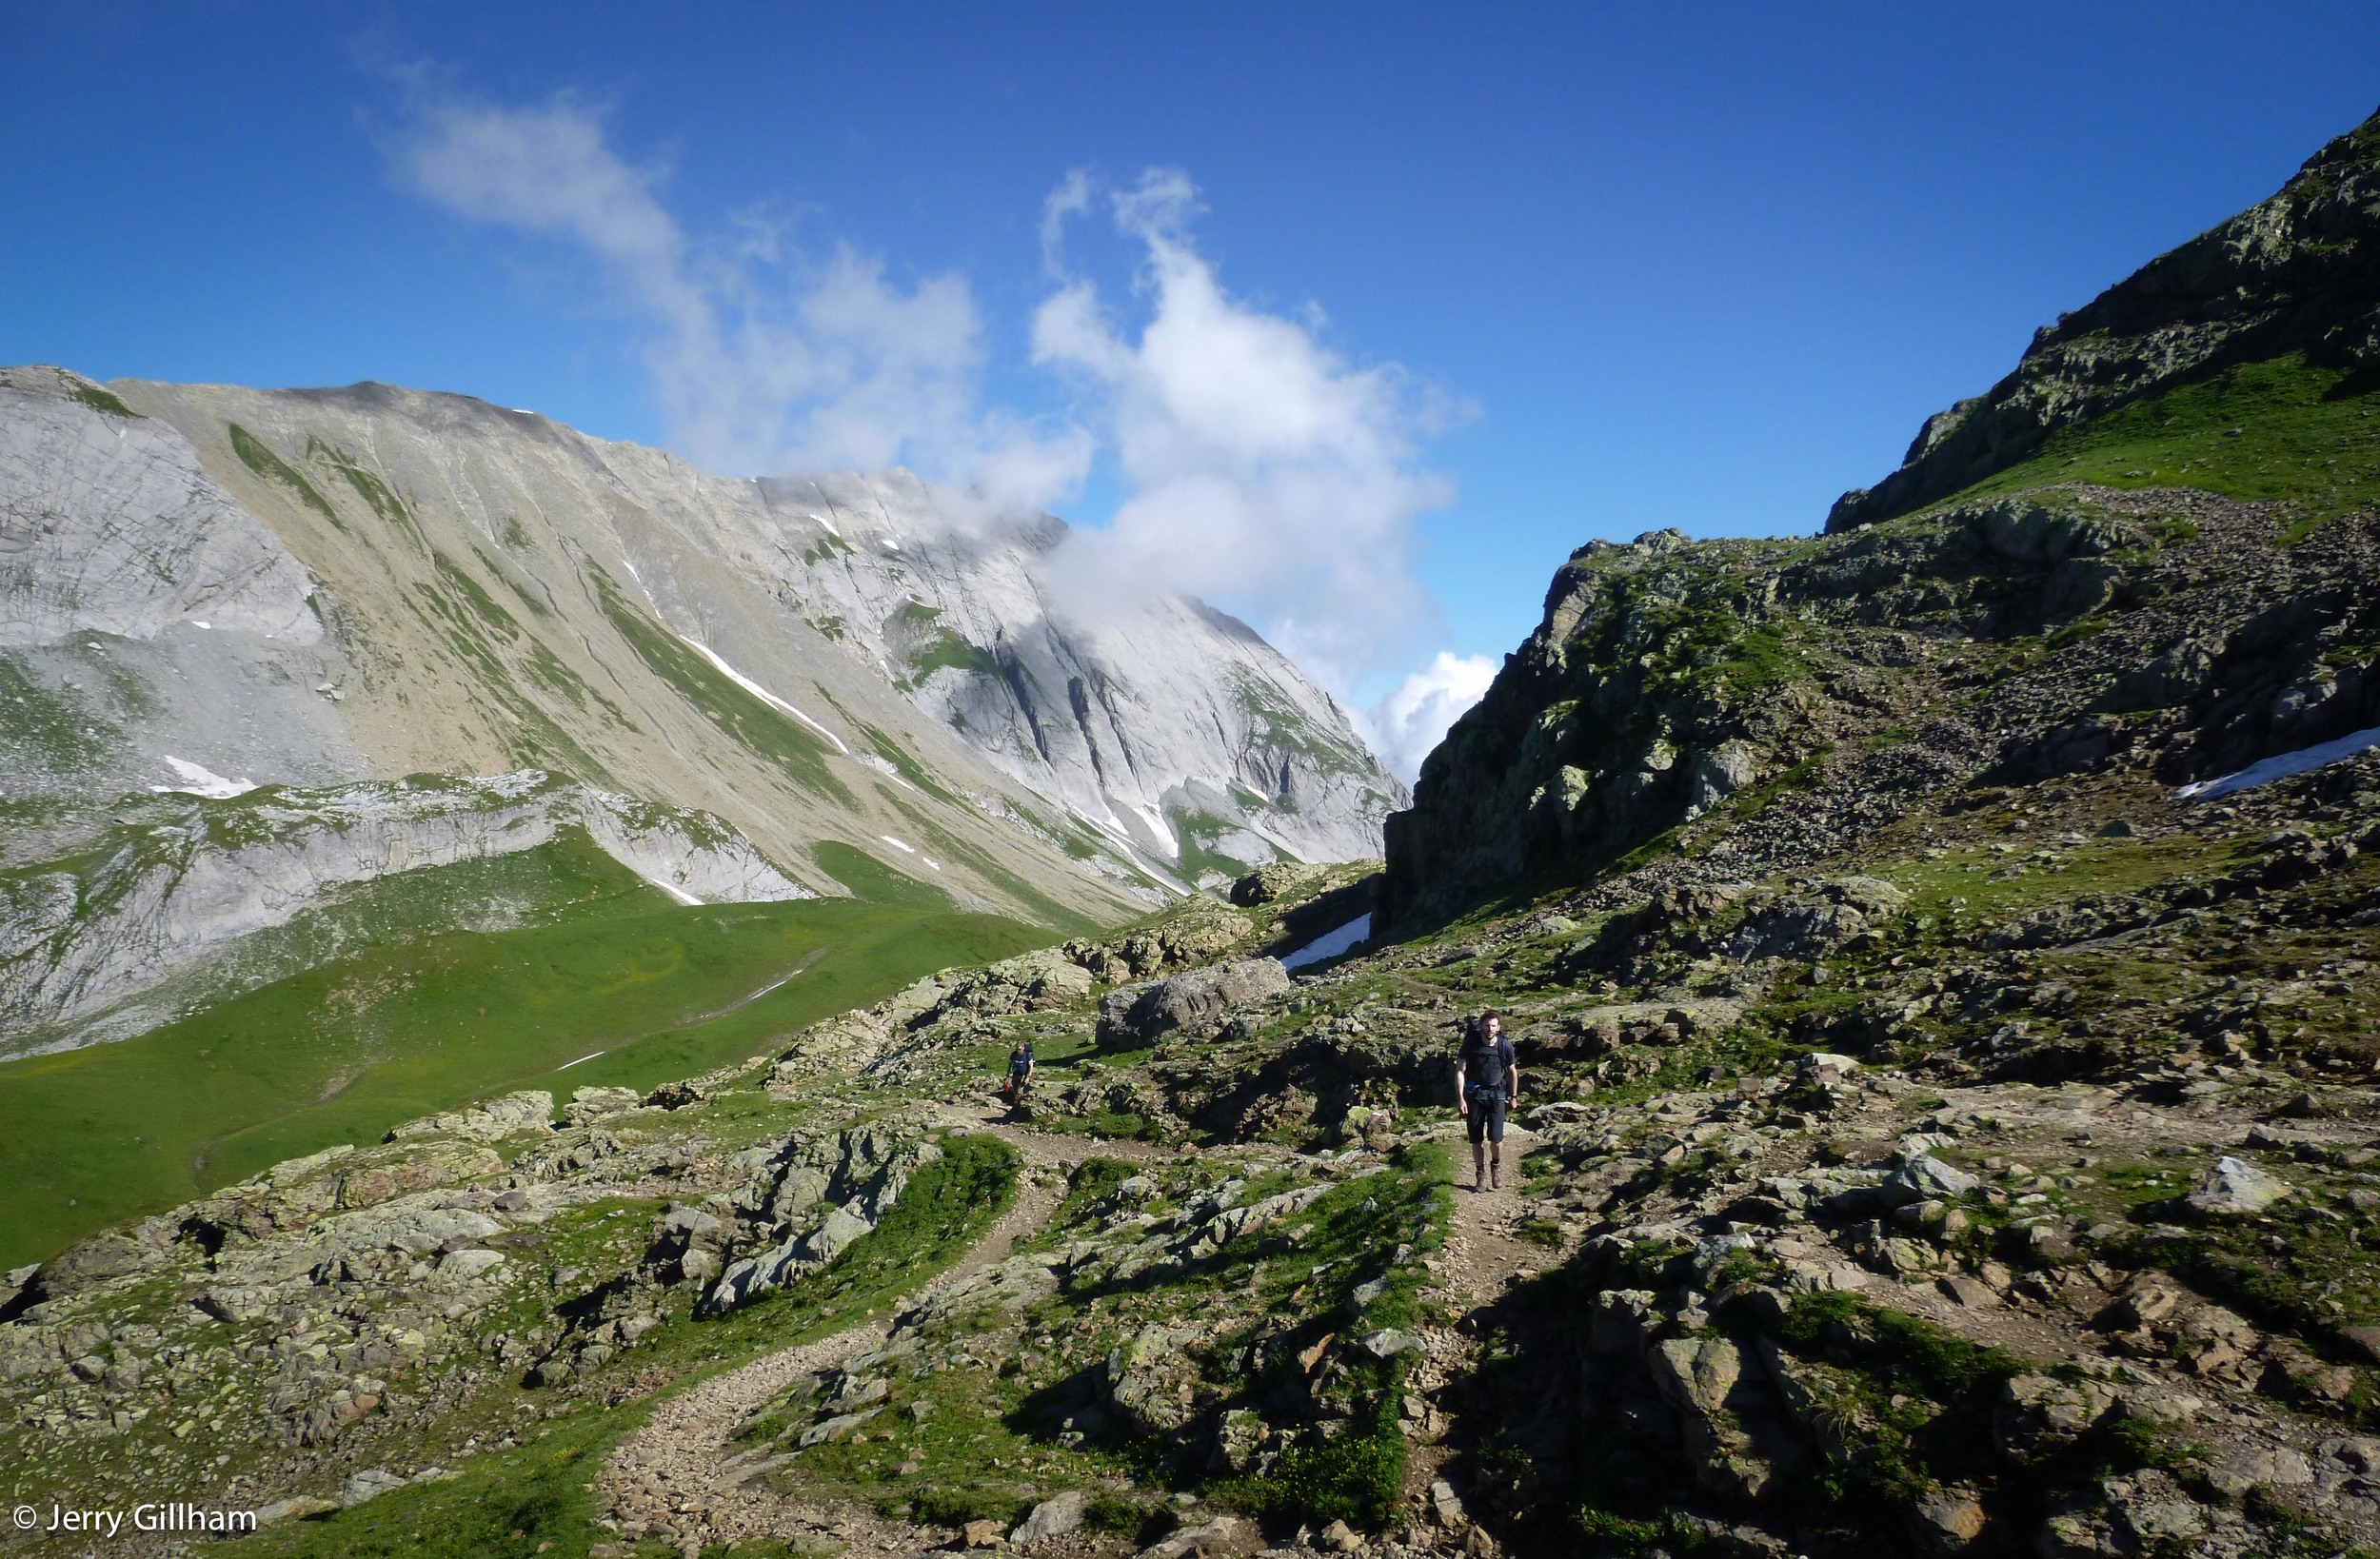 Heading higher, toward the Col de la Croix.